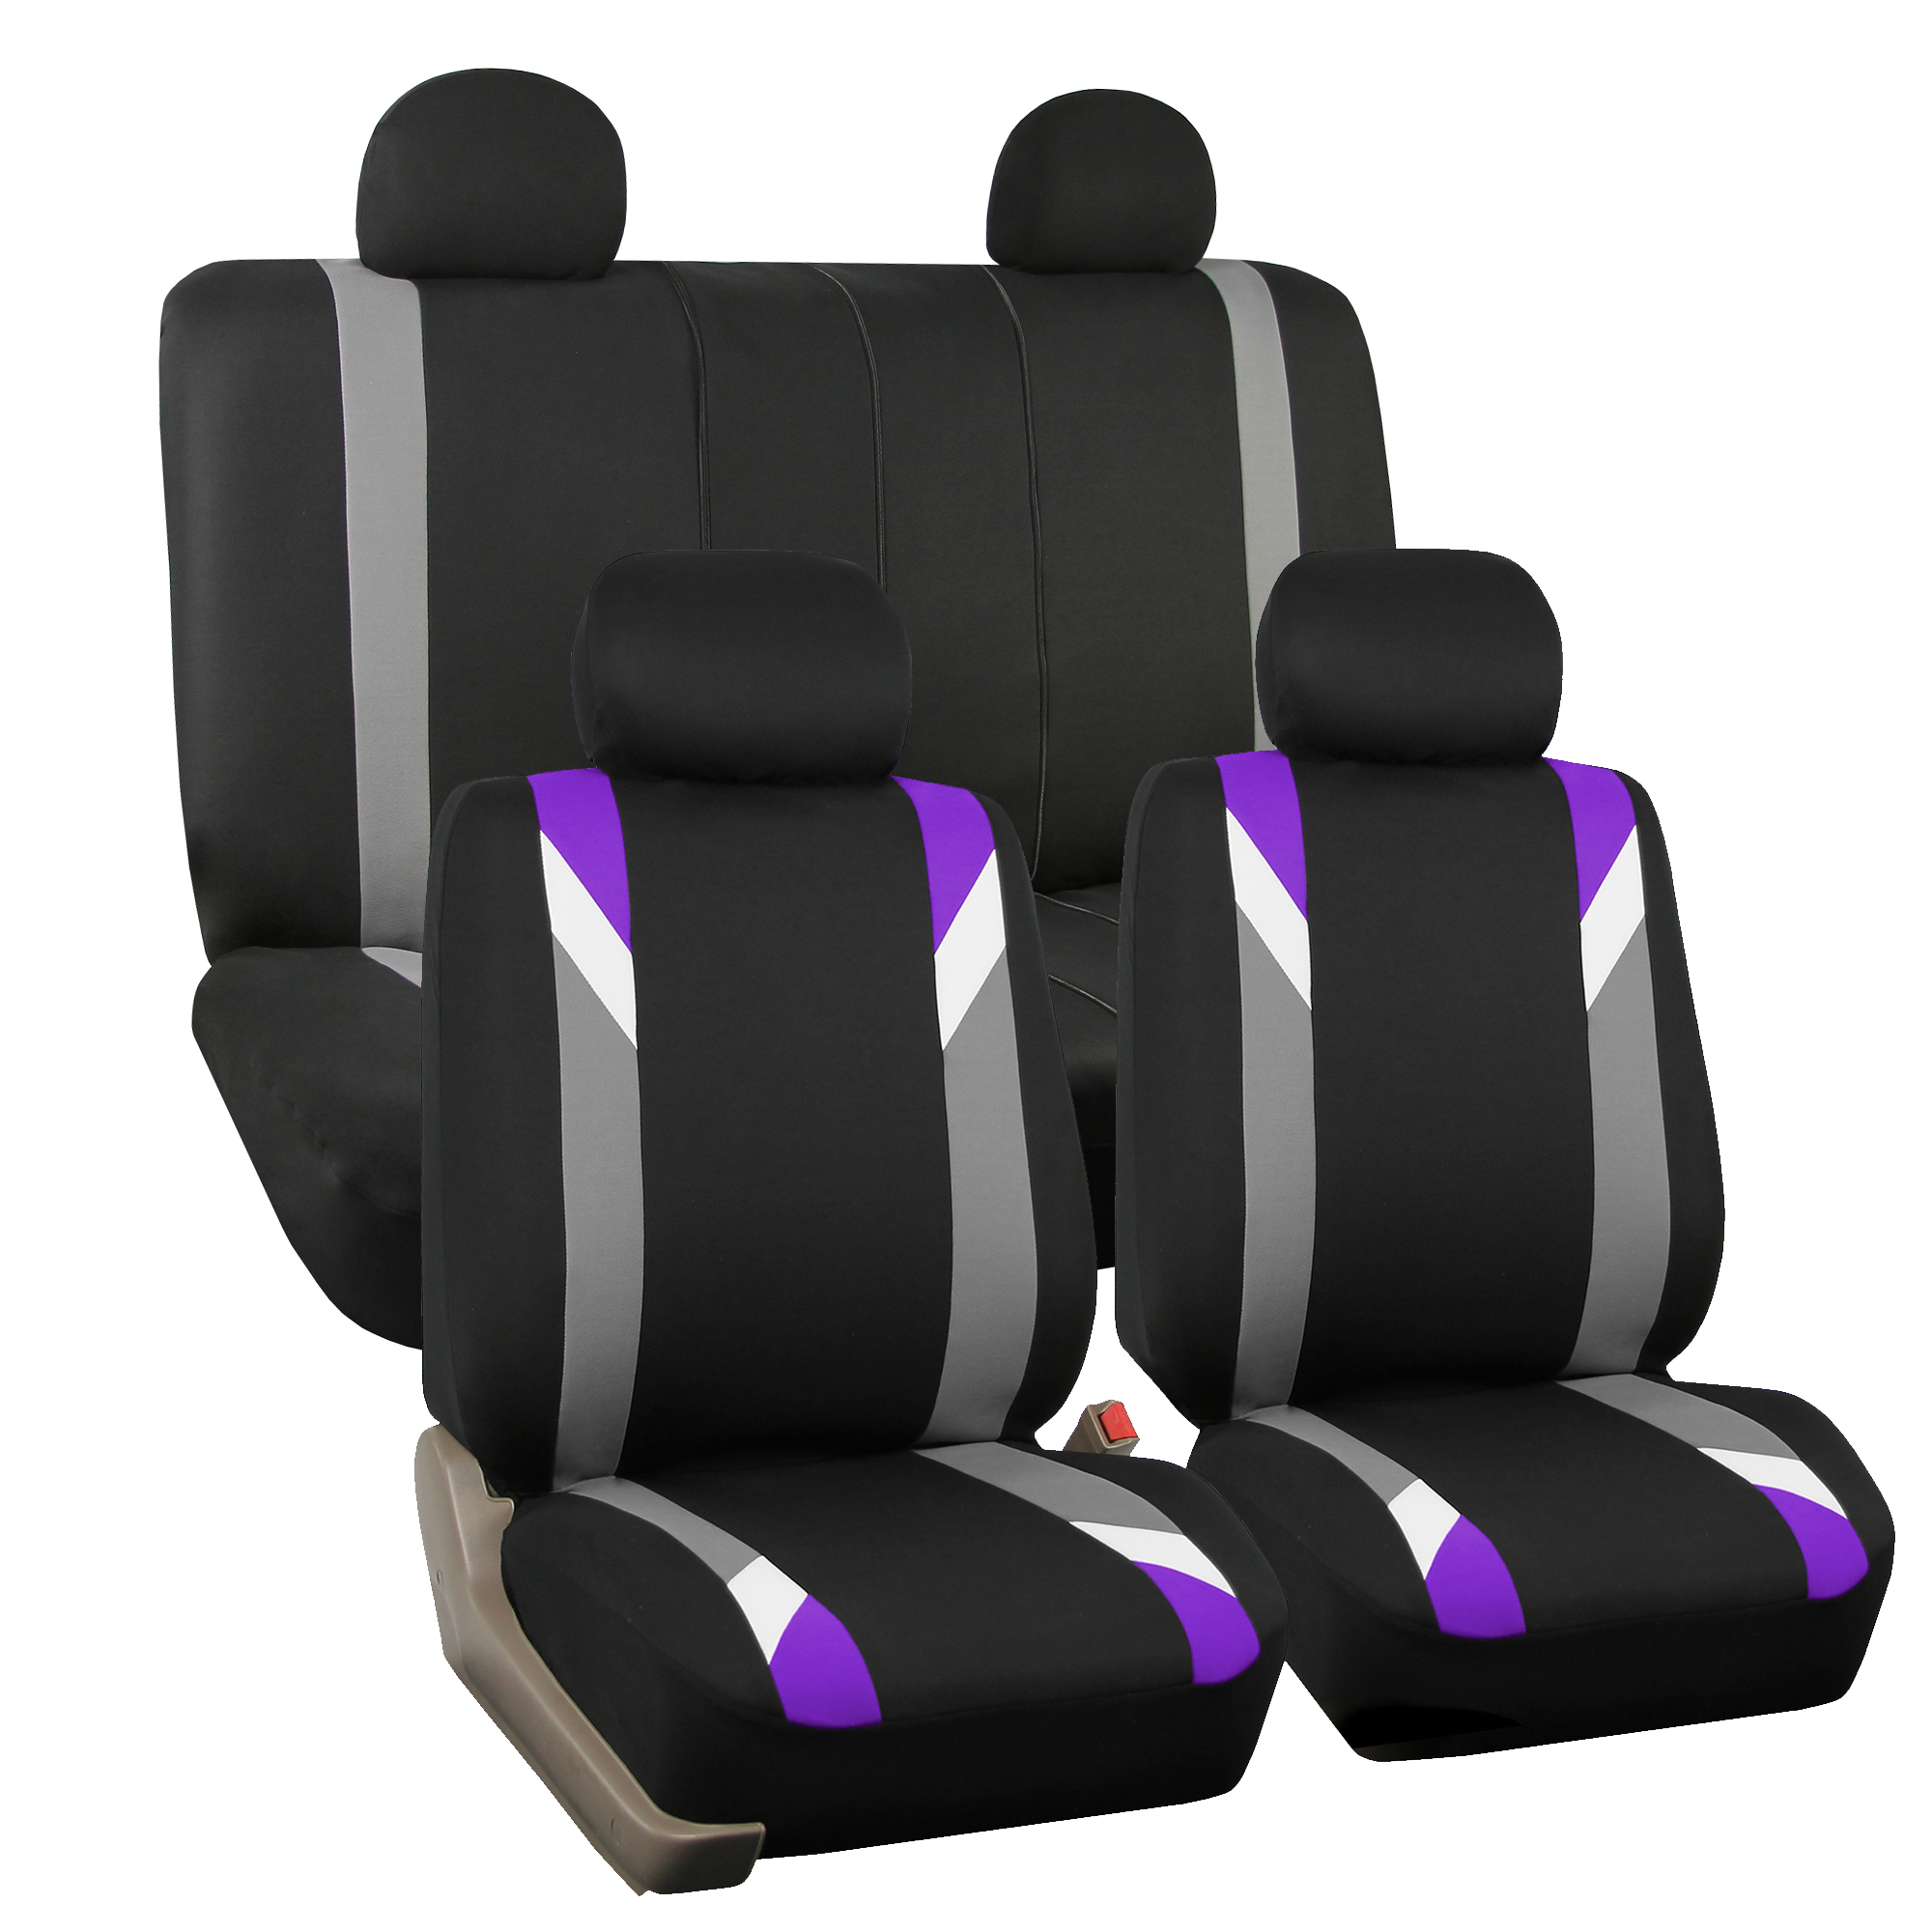 Seat Covers For Auto Car Purple W 3PC Carpet Floor Mats